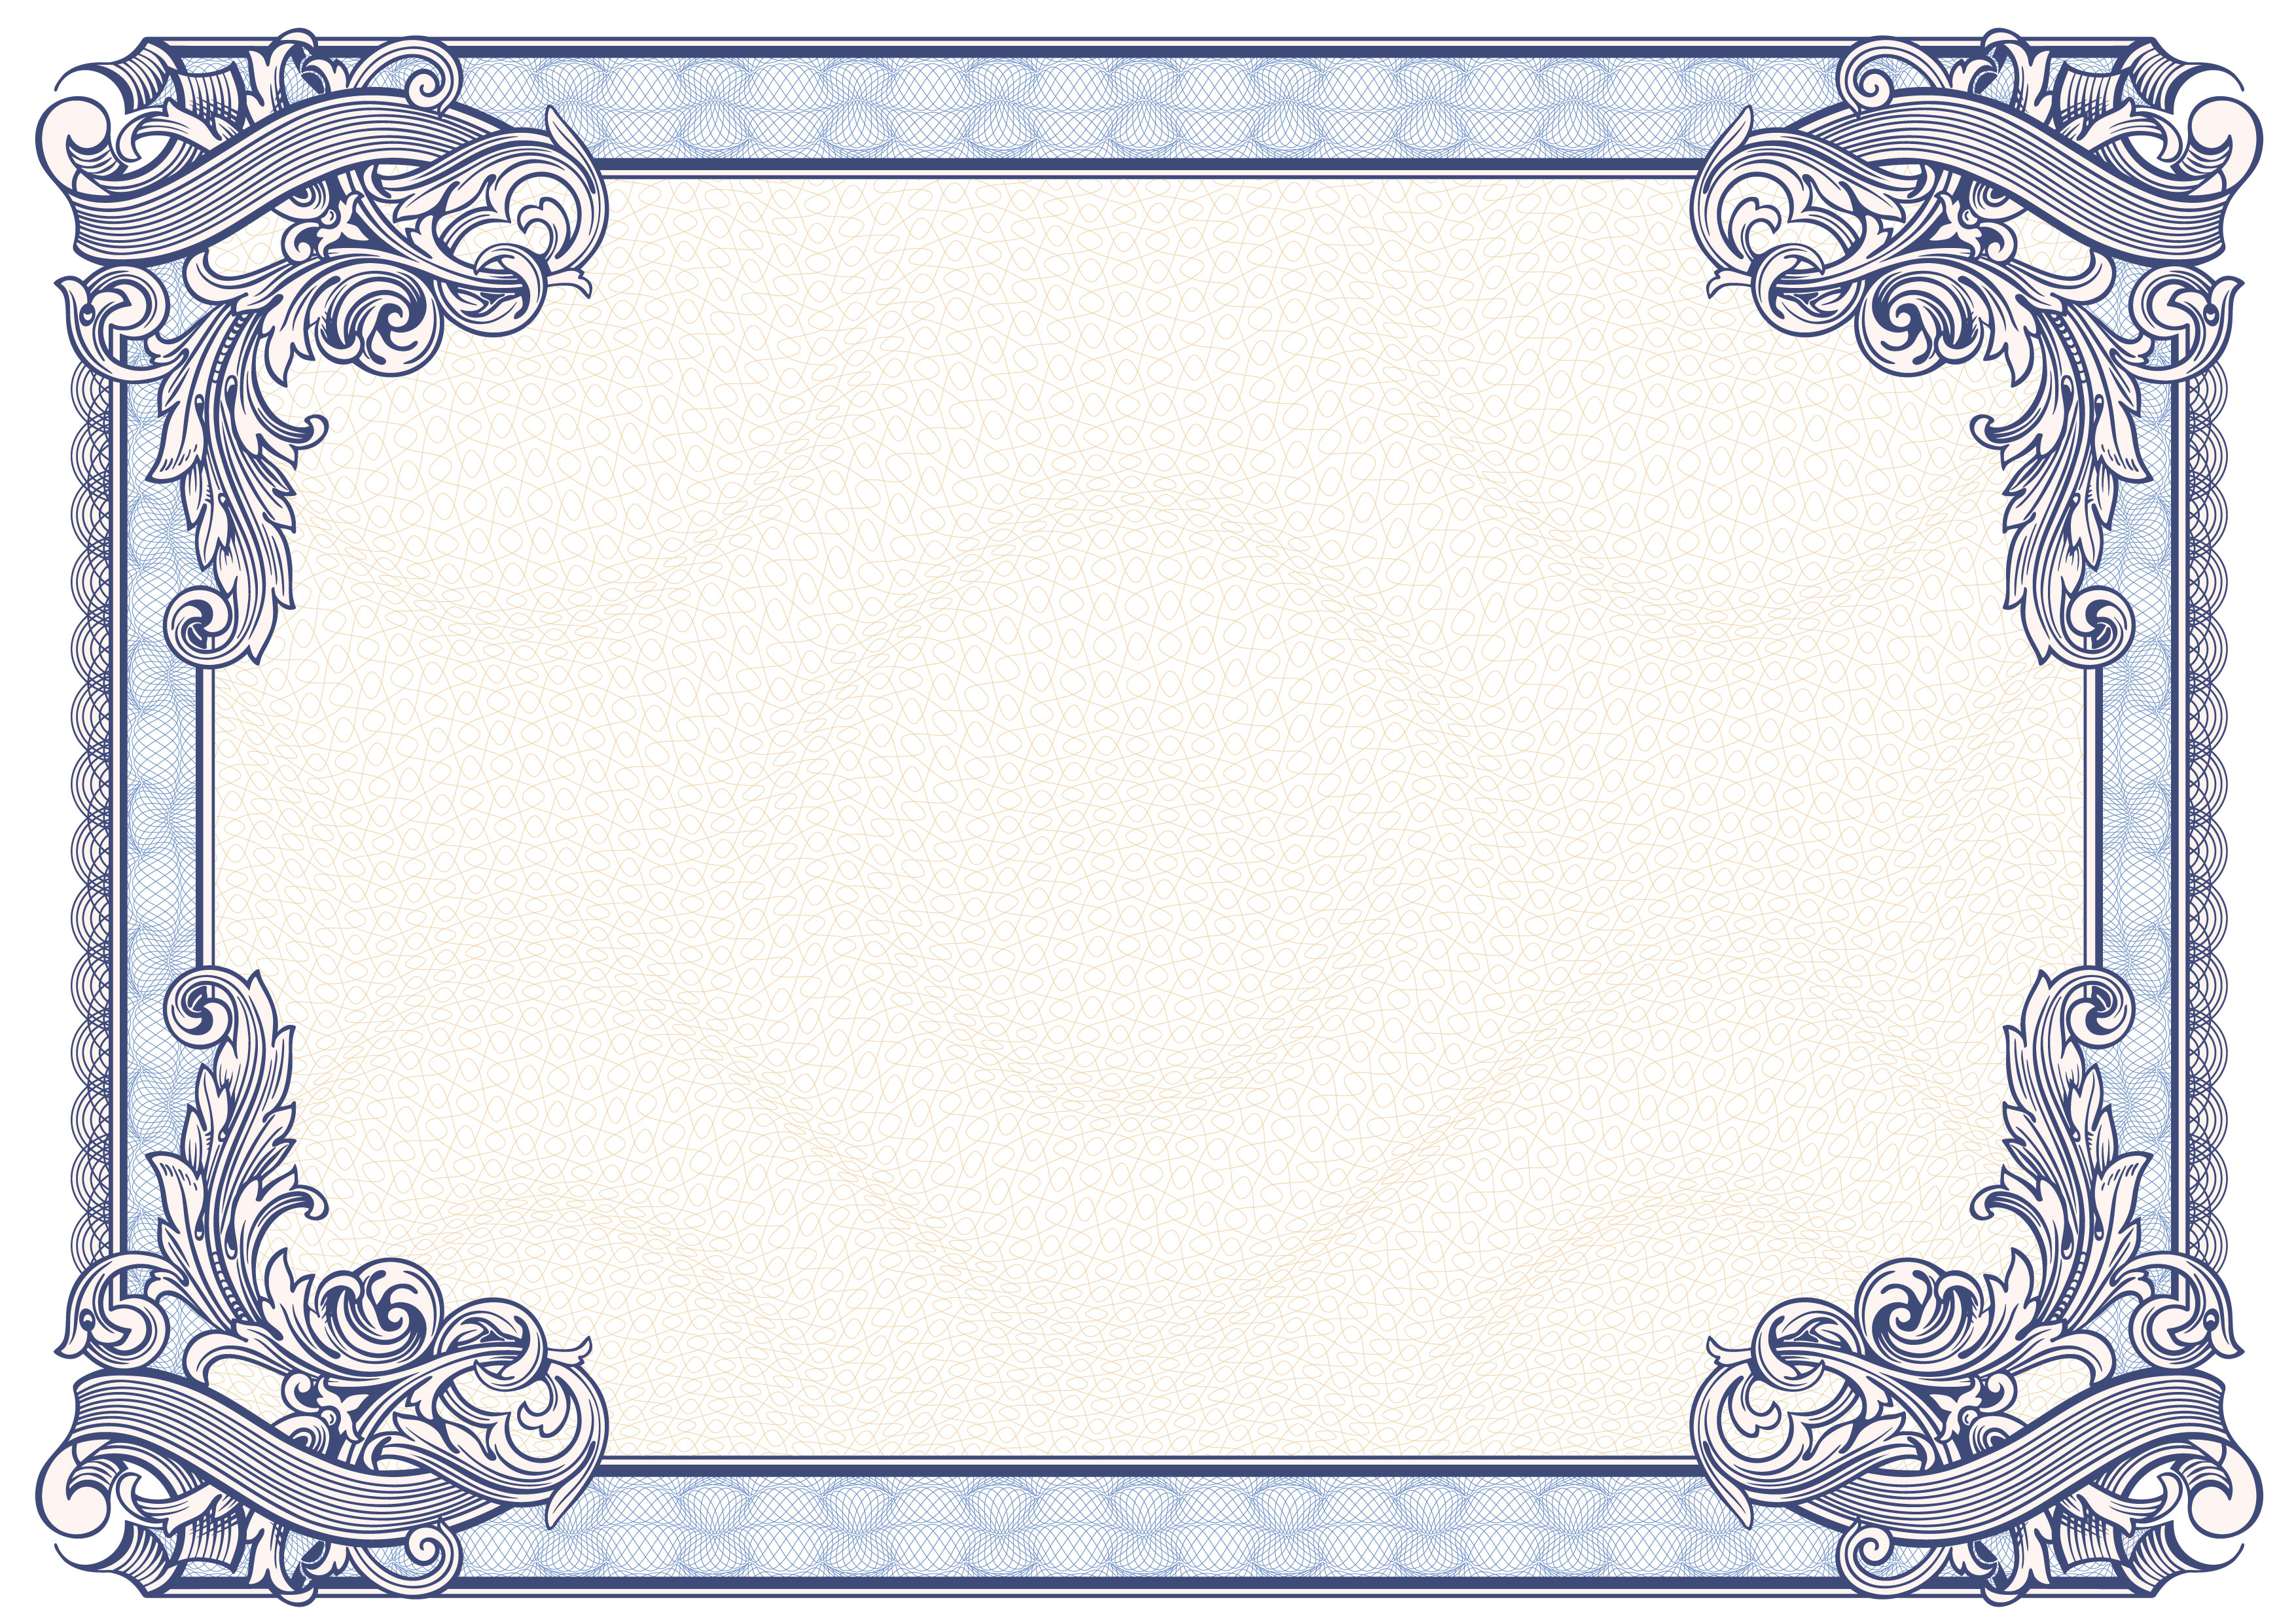 21+ Beautiful Certificate Border Templates & Designs Throughout Word Border Templates Free Download